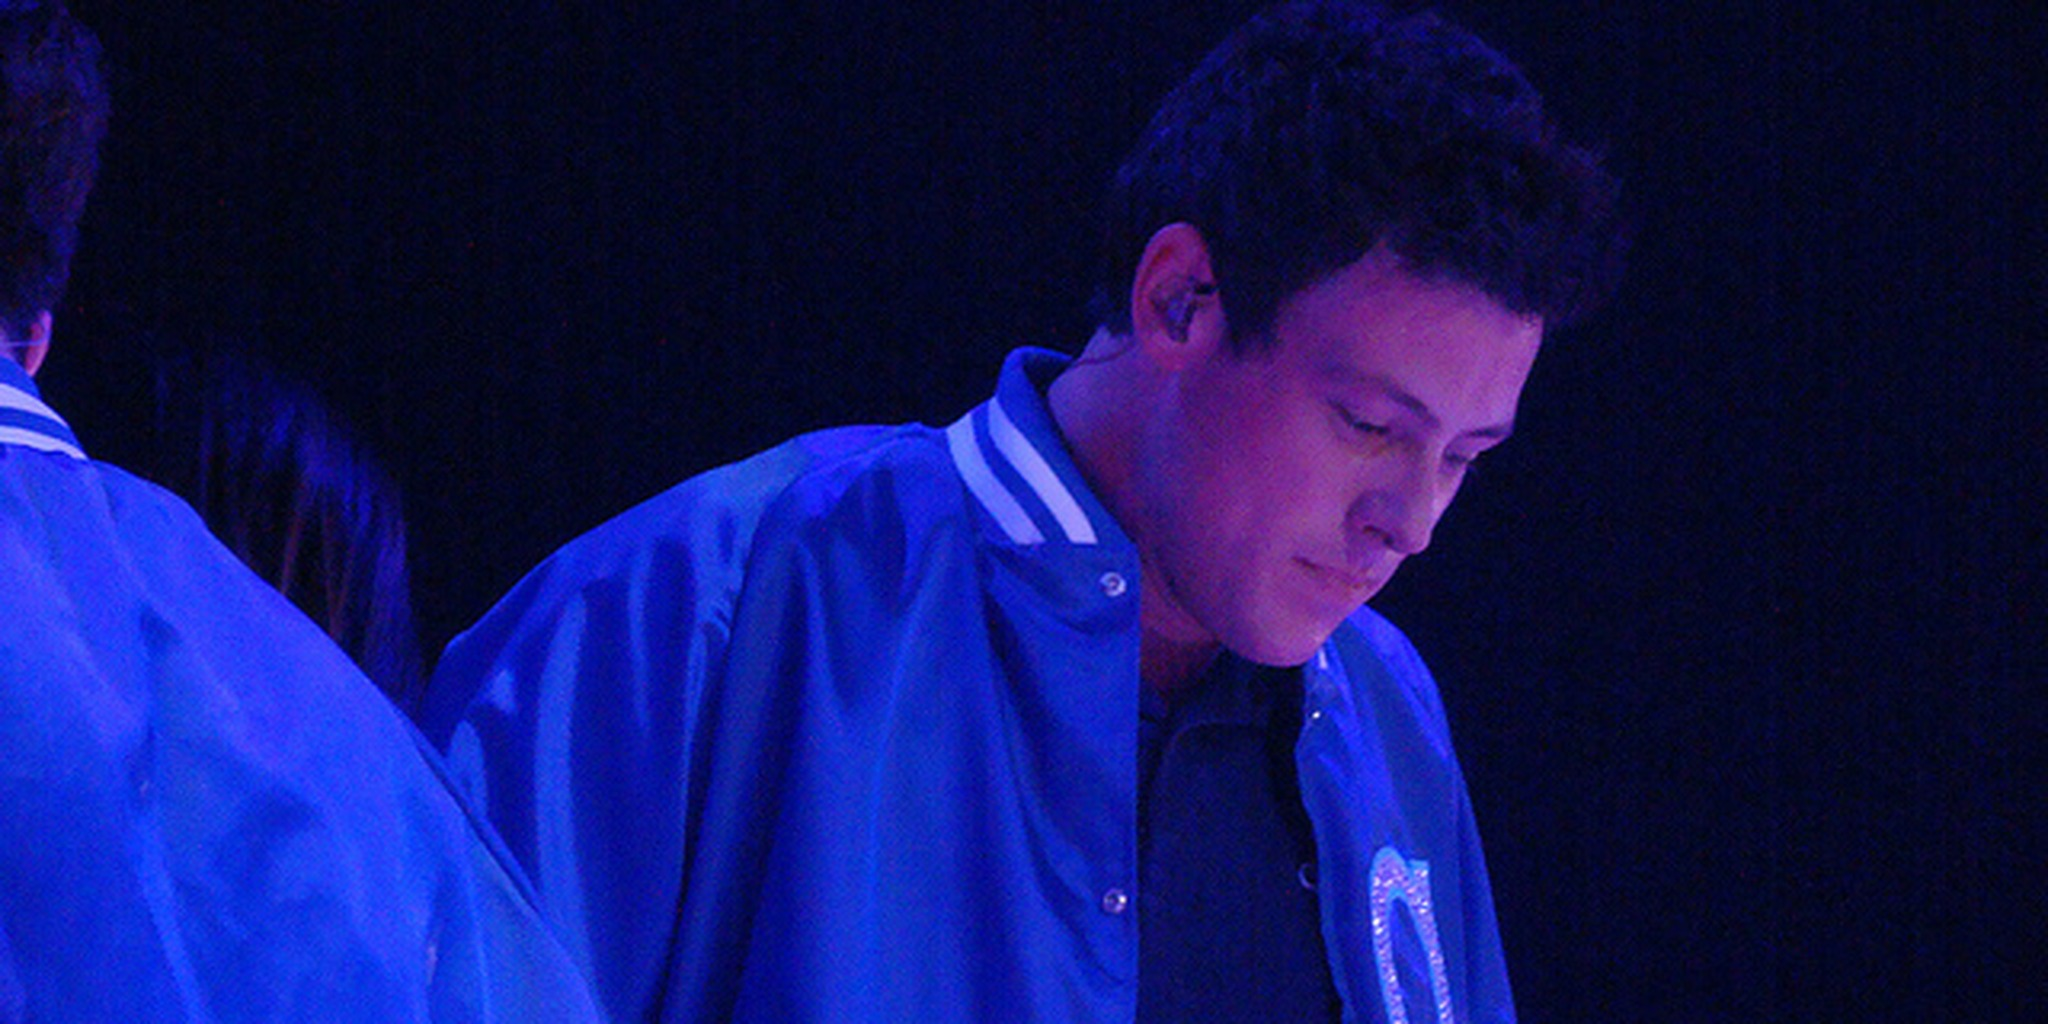 All sizes | Cory Monteith | Flickr - Photo Sharing!